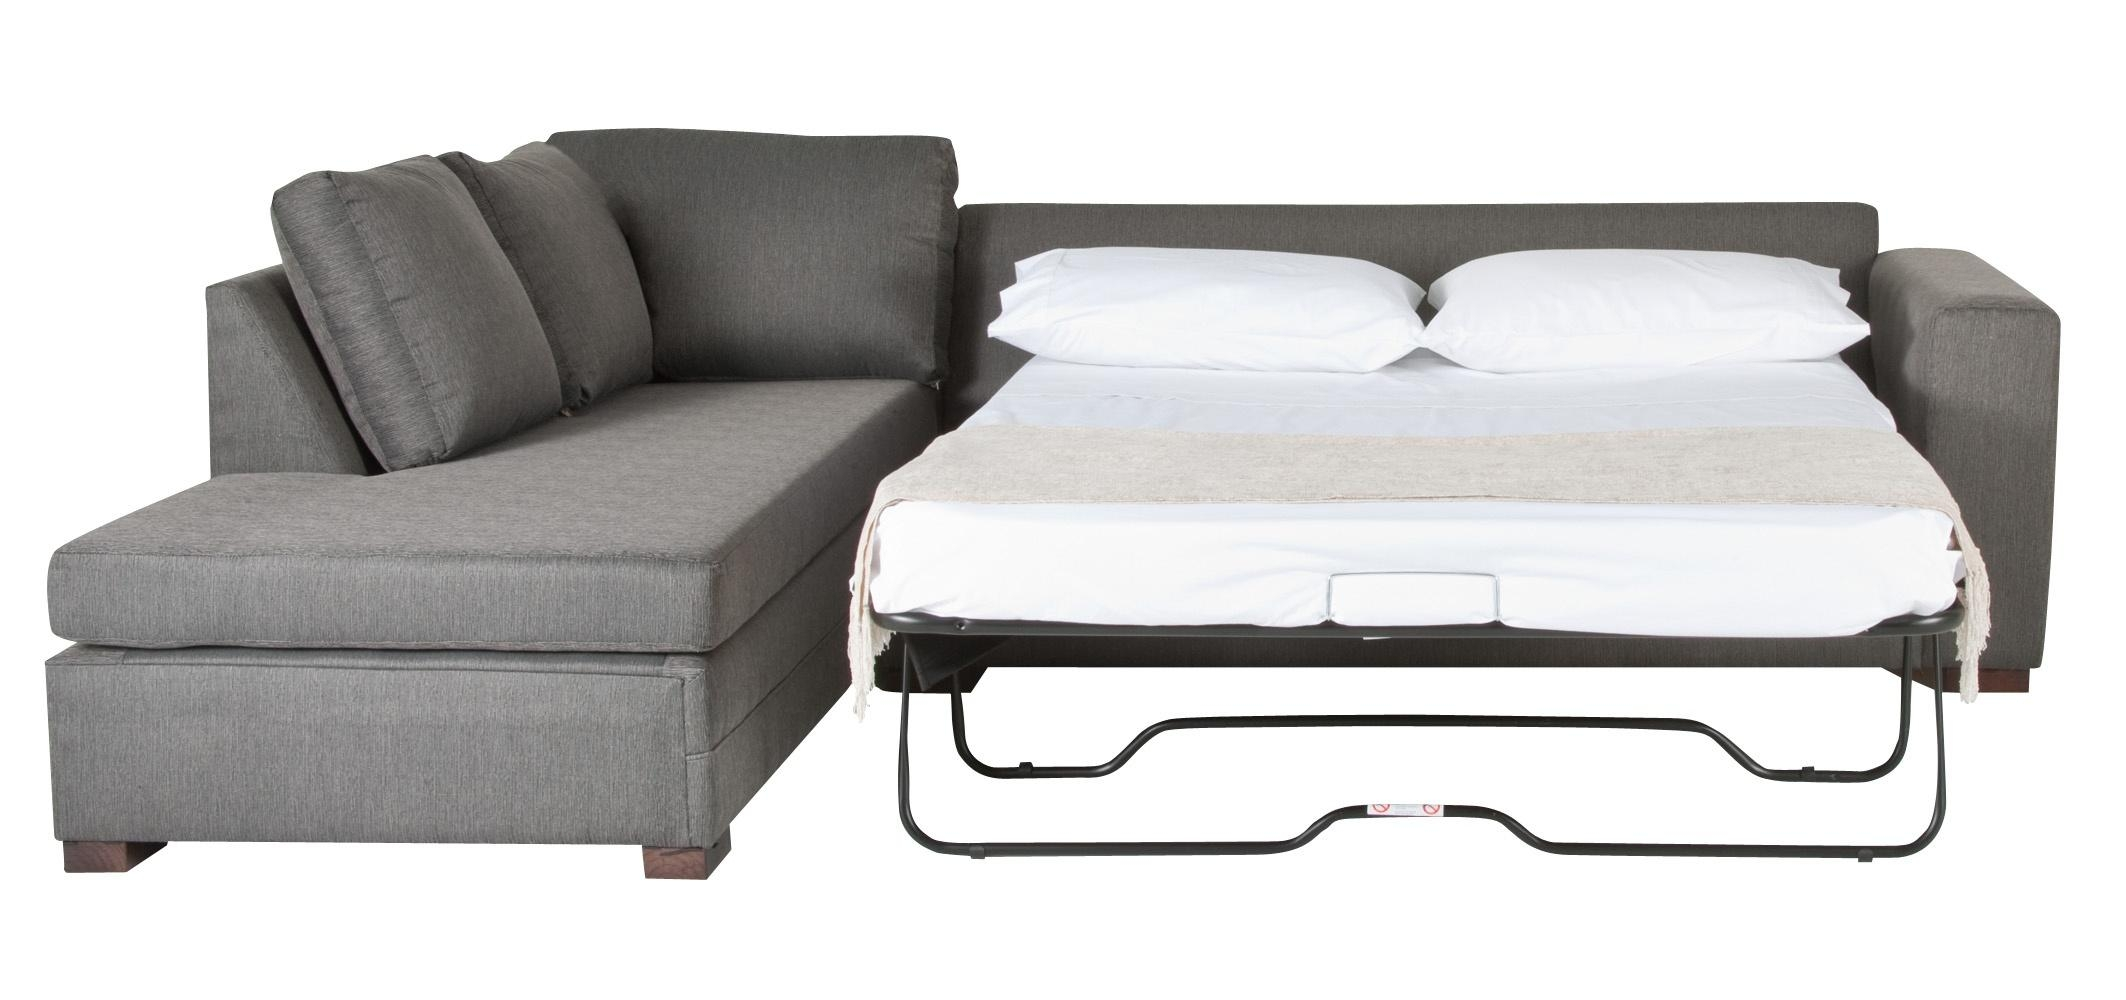 ▻ Sofa : 2 Good Queen Size Pull Out Sofa Bed 77 For Your Pull Out In Pull Out Queen Size Bed Sofas (View 1 of 20)